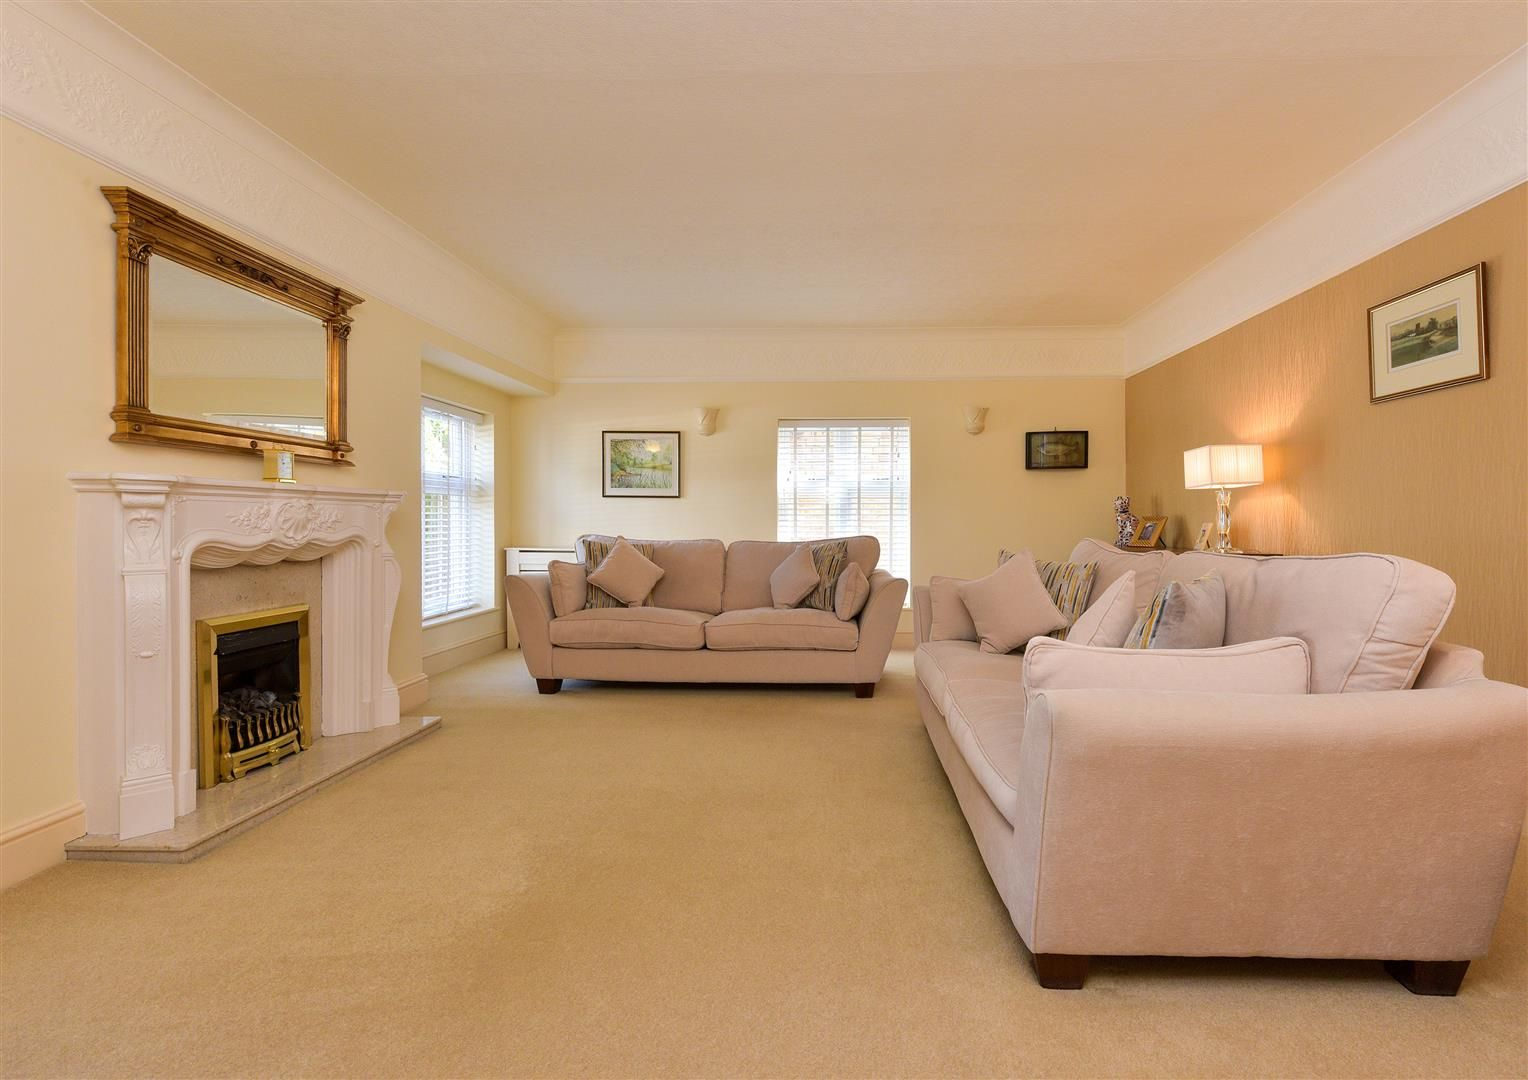 6 bed detached for sale in Hagley 8